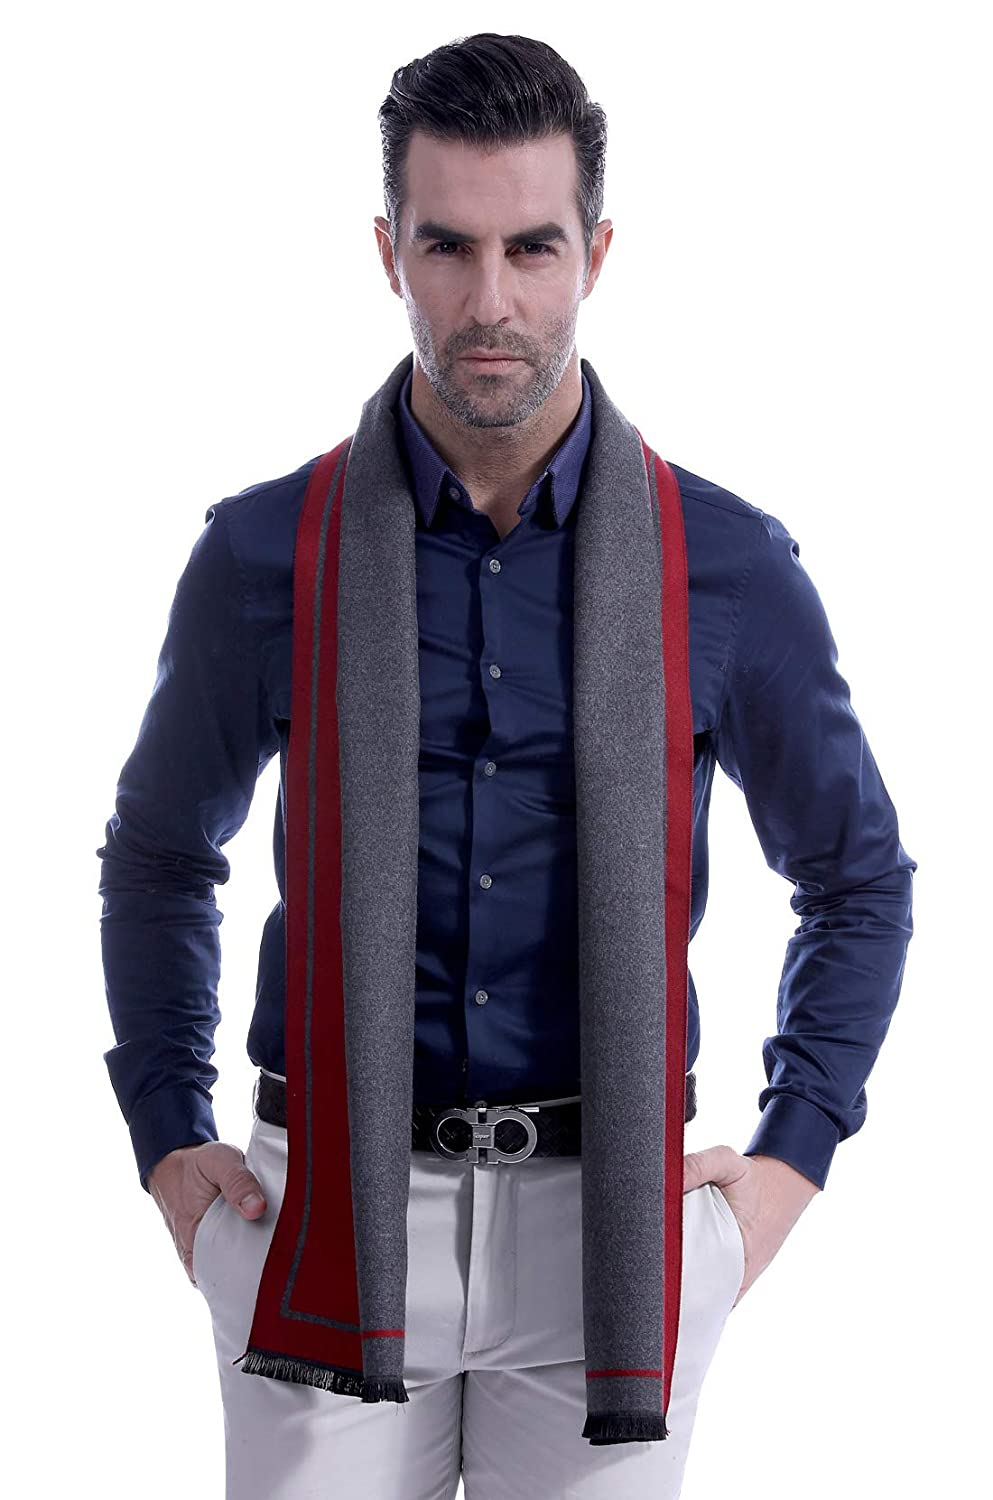 Business Men Scarf Long Winter Scarves Stylish Patchwork Color Winter Neck Scarf Head Scarf for Men Beige & Brown Panegy